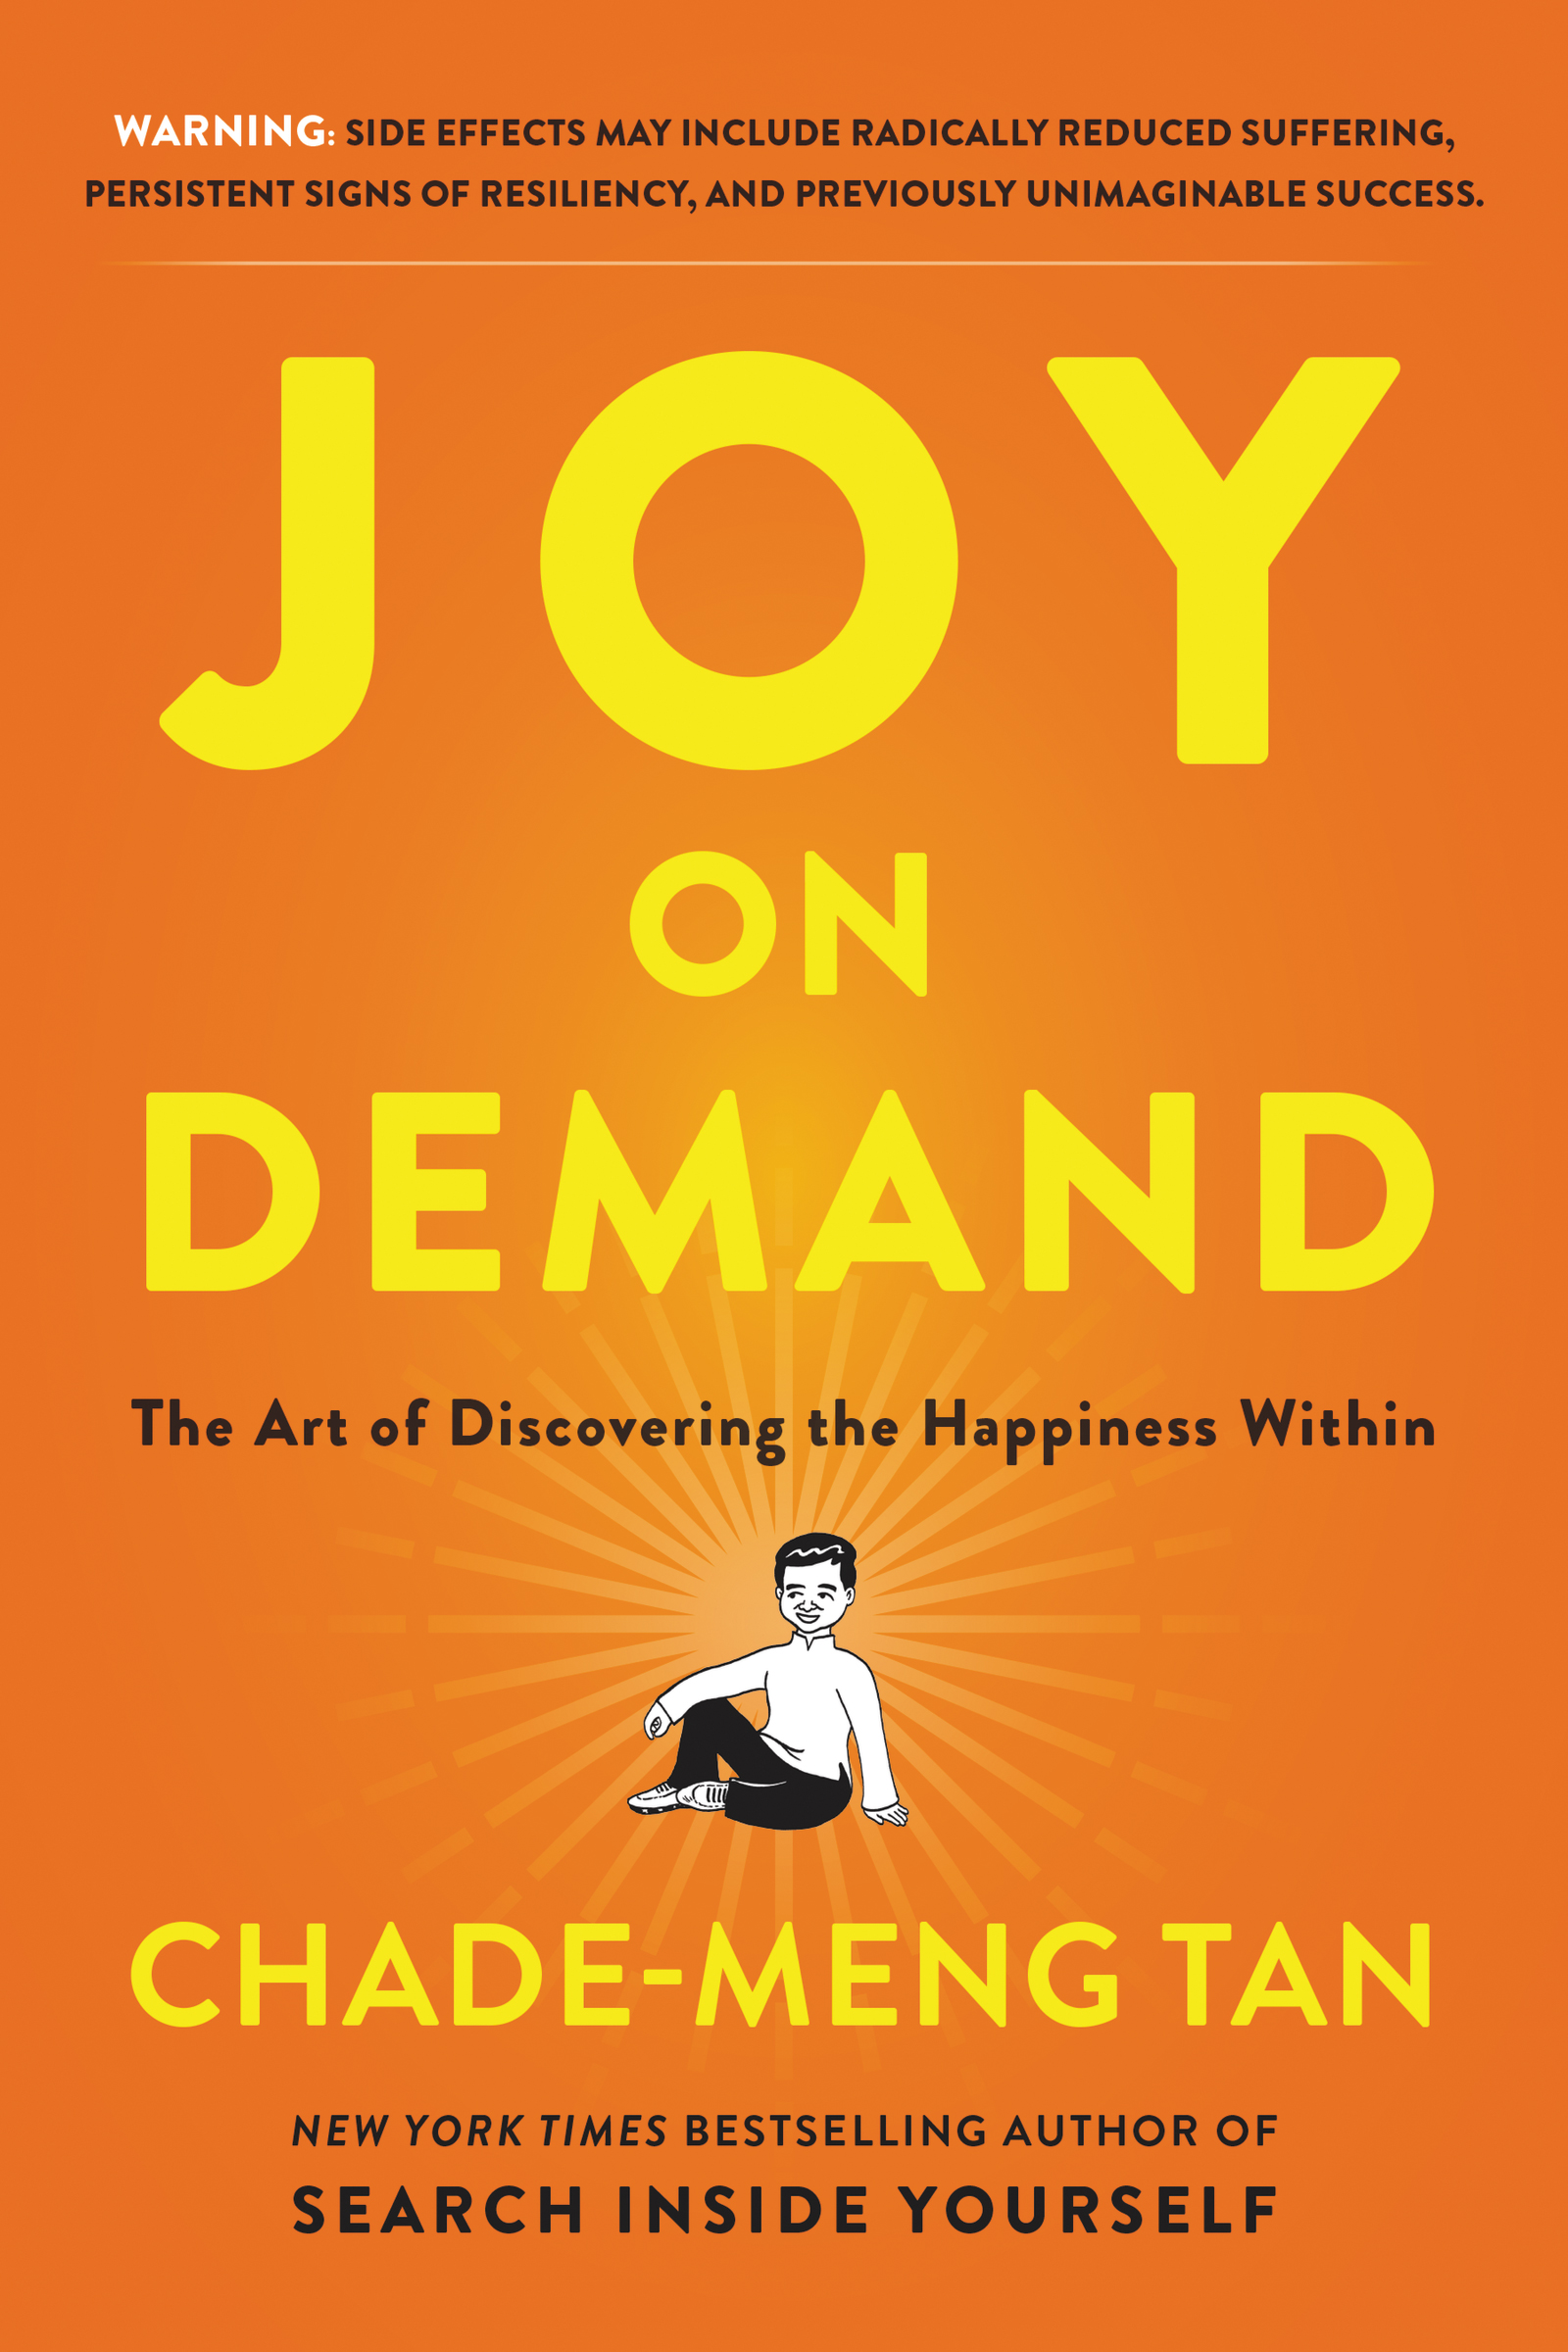 Download Ebook Joy on Demand by Chade-Meng Tan Pdf